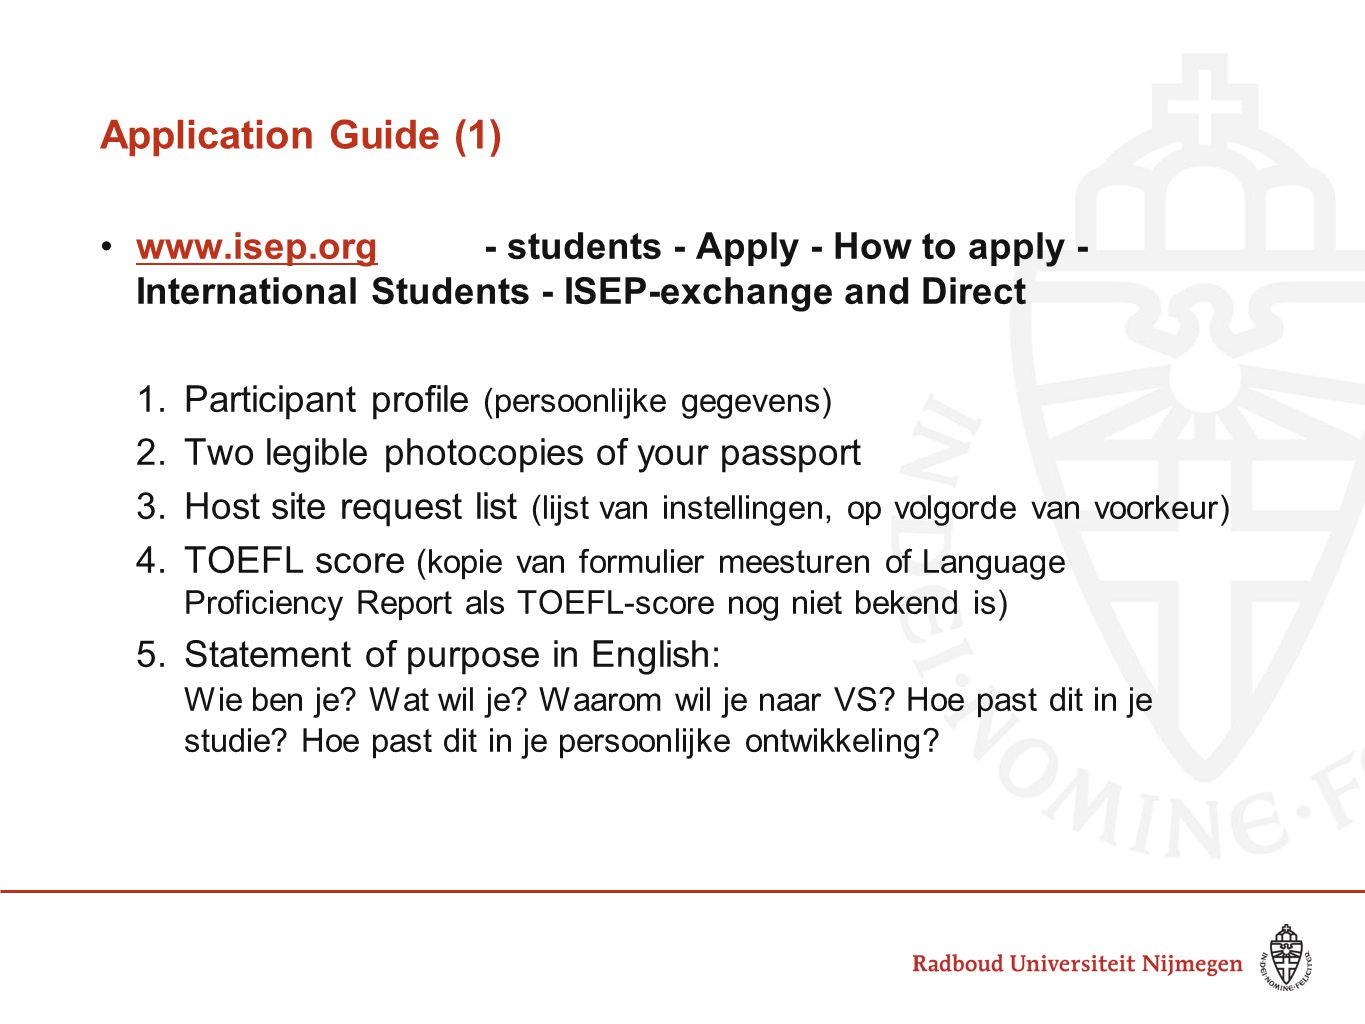 Application Guide (1) www.isep.org - students - Apply - How to apply - International Students - ISEP-exchange and Direct.